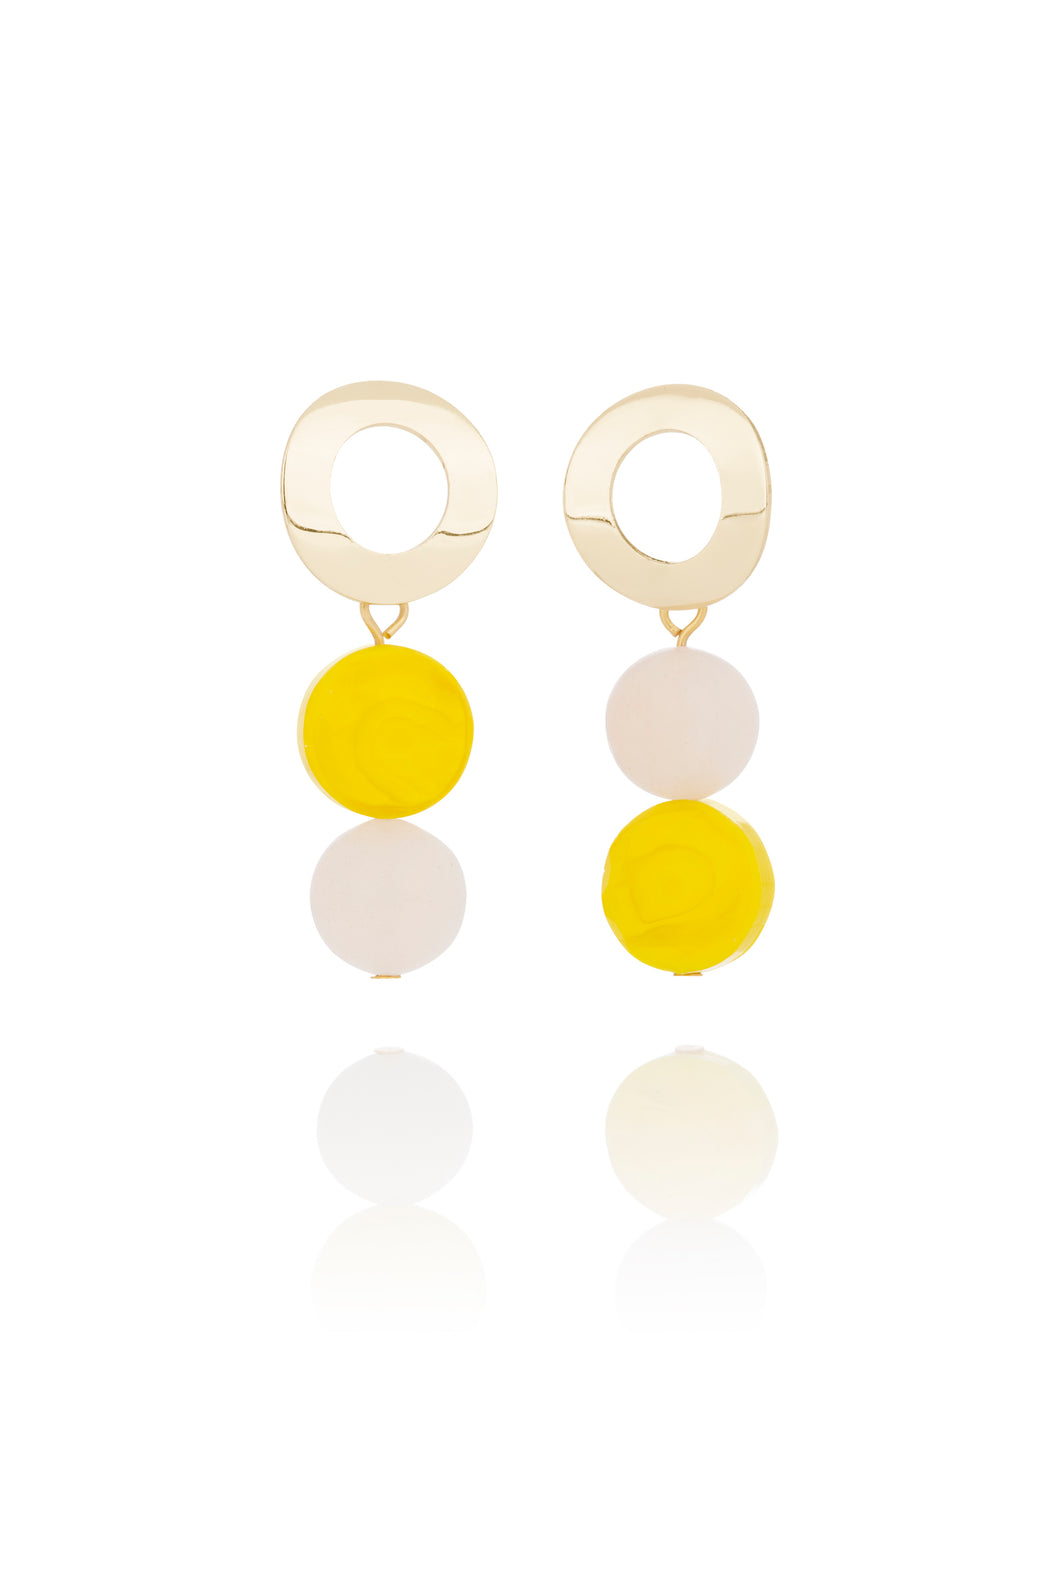 Rose Quartz and Yellow Earrings